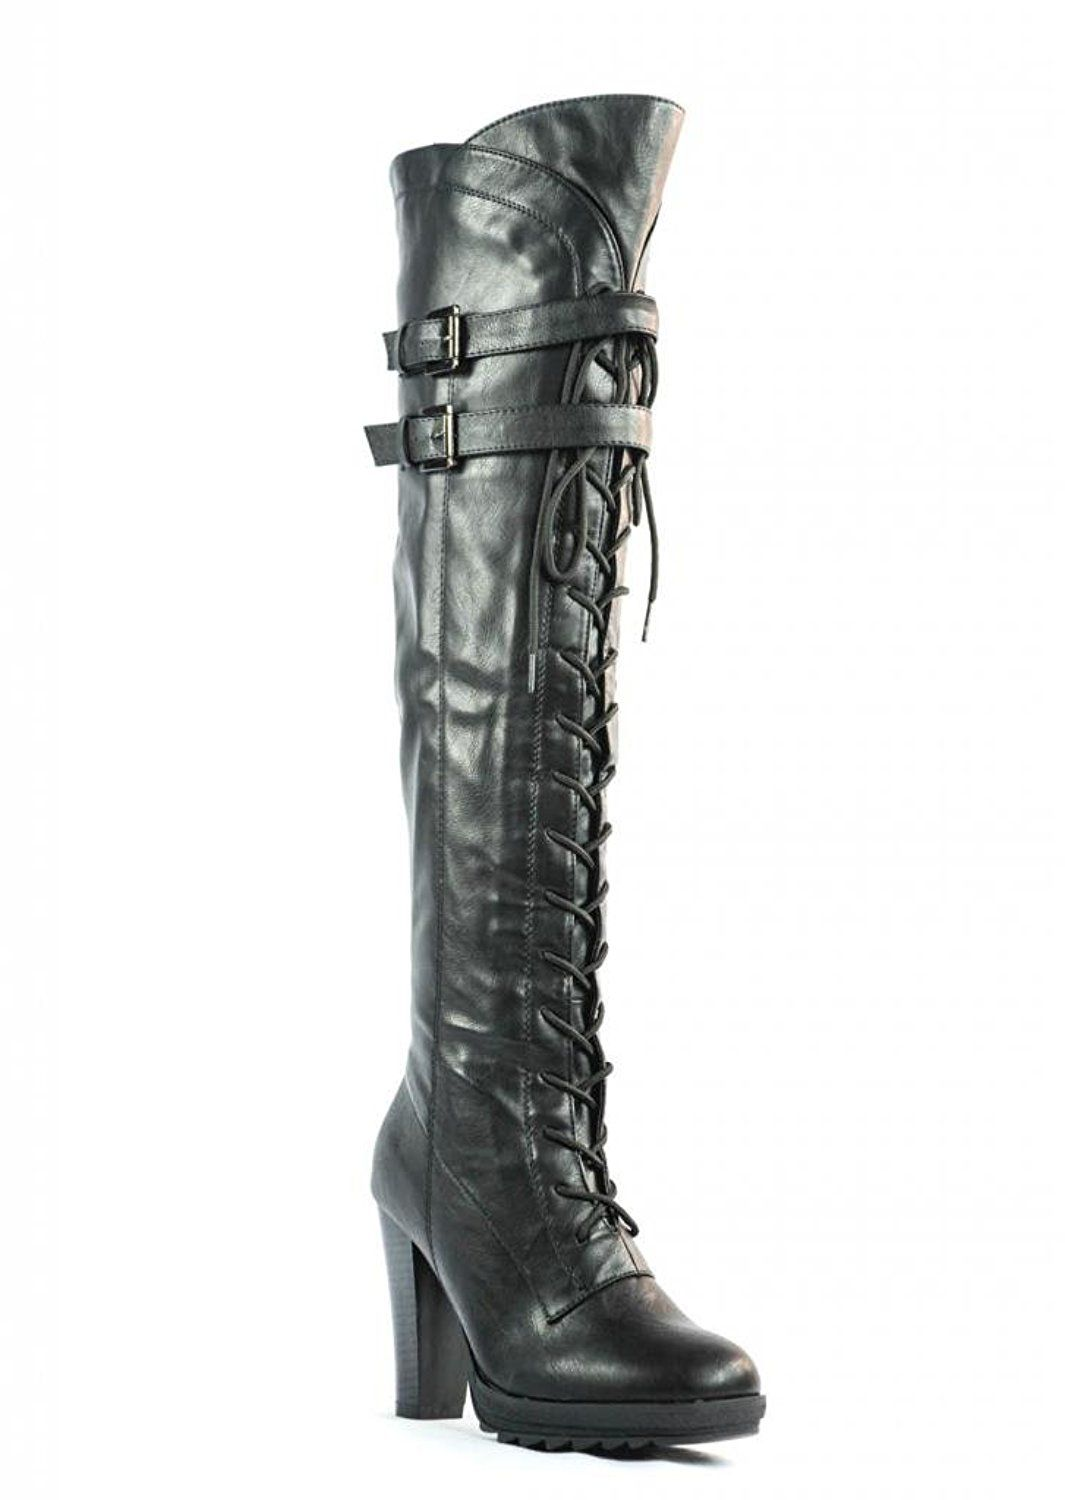 264e1aa7245 Dream Pairs Lacey Over Knee High Heel Lace up Zipper Closure combat Boots      Trust me